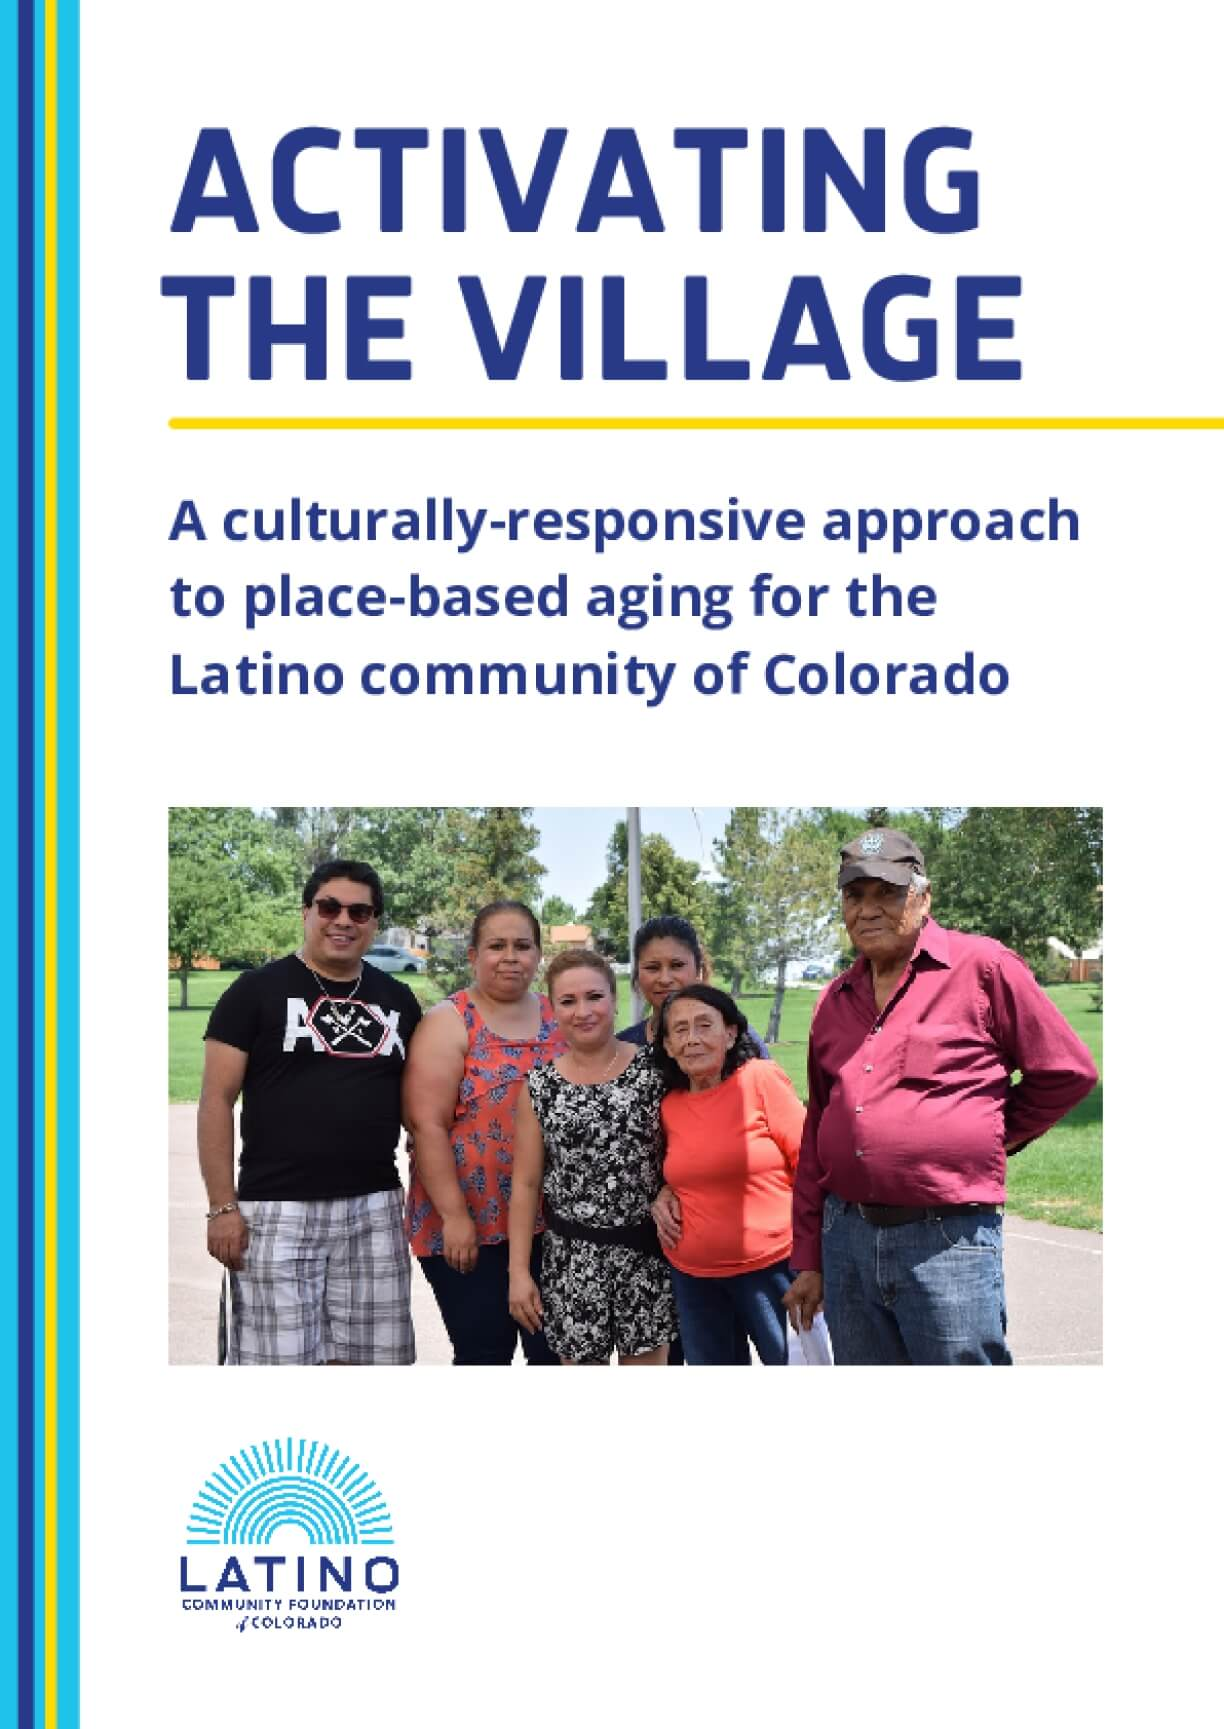 Activating the Village: A Culturally Responsive Approach to Place-based Aging for the Latino Community of Colorado